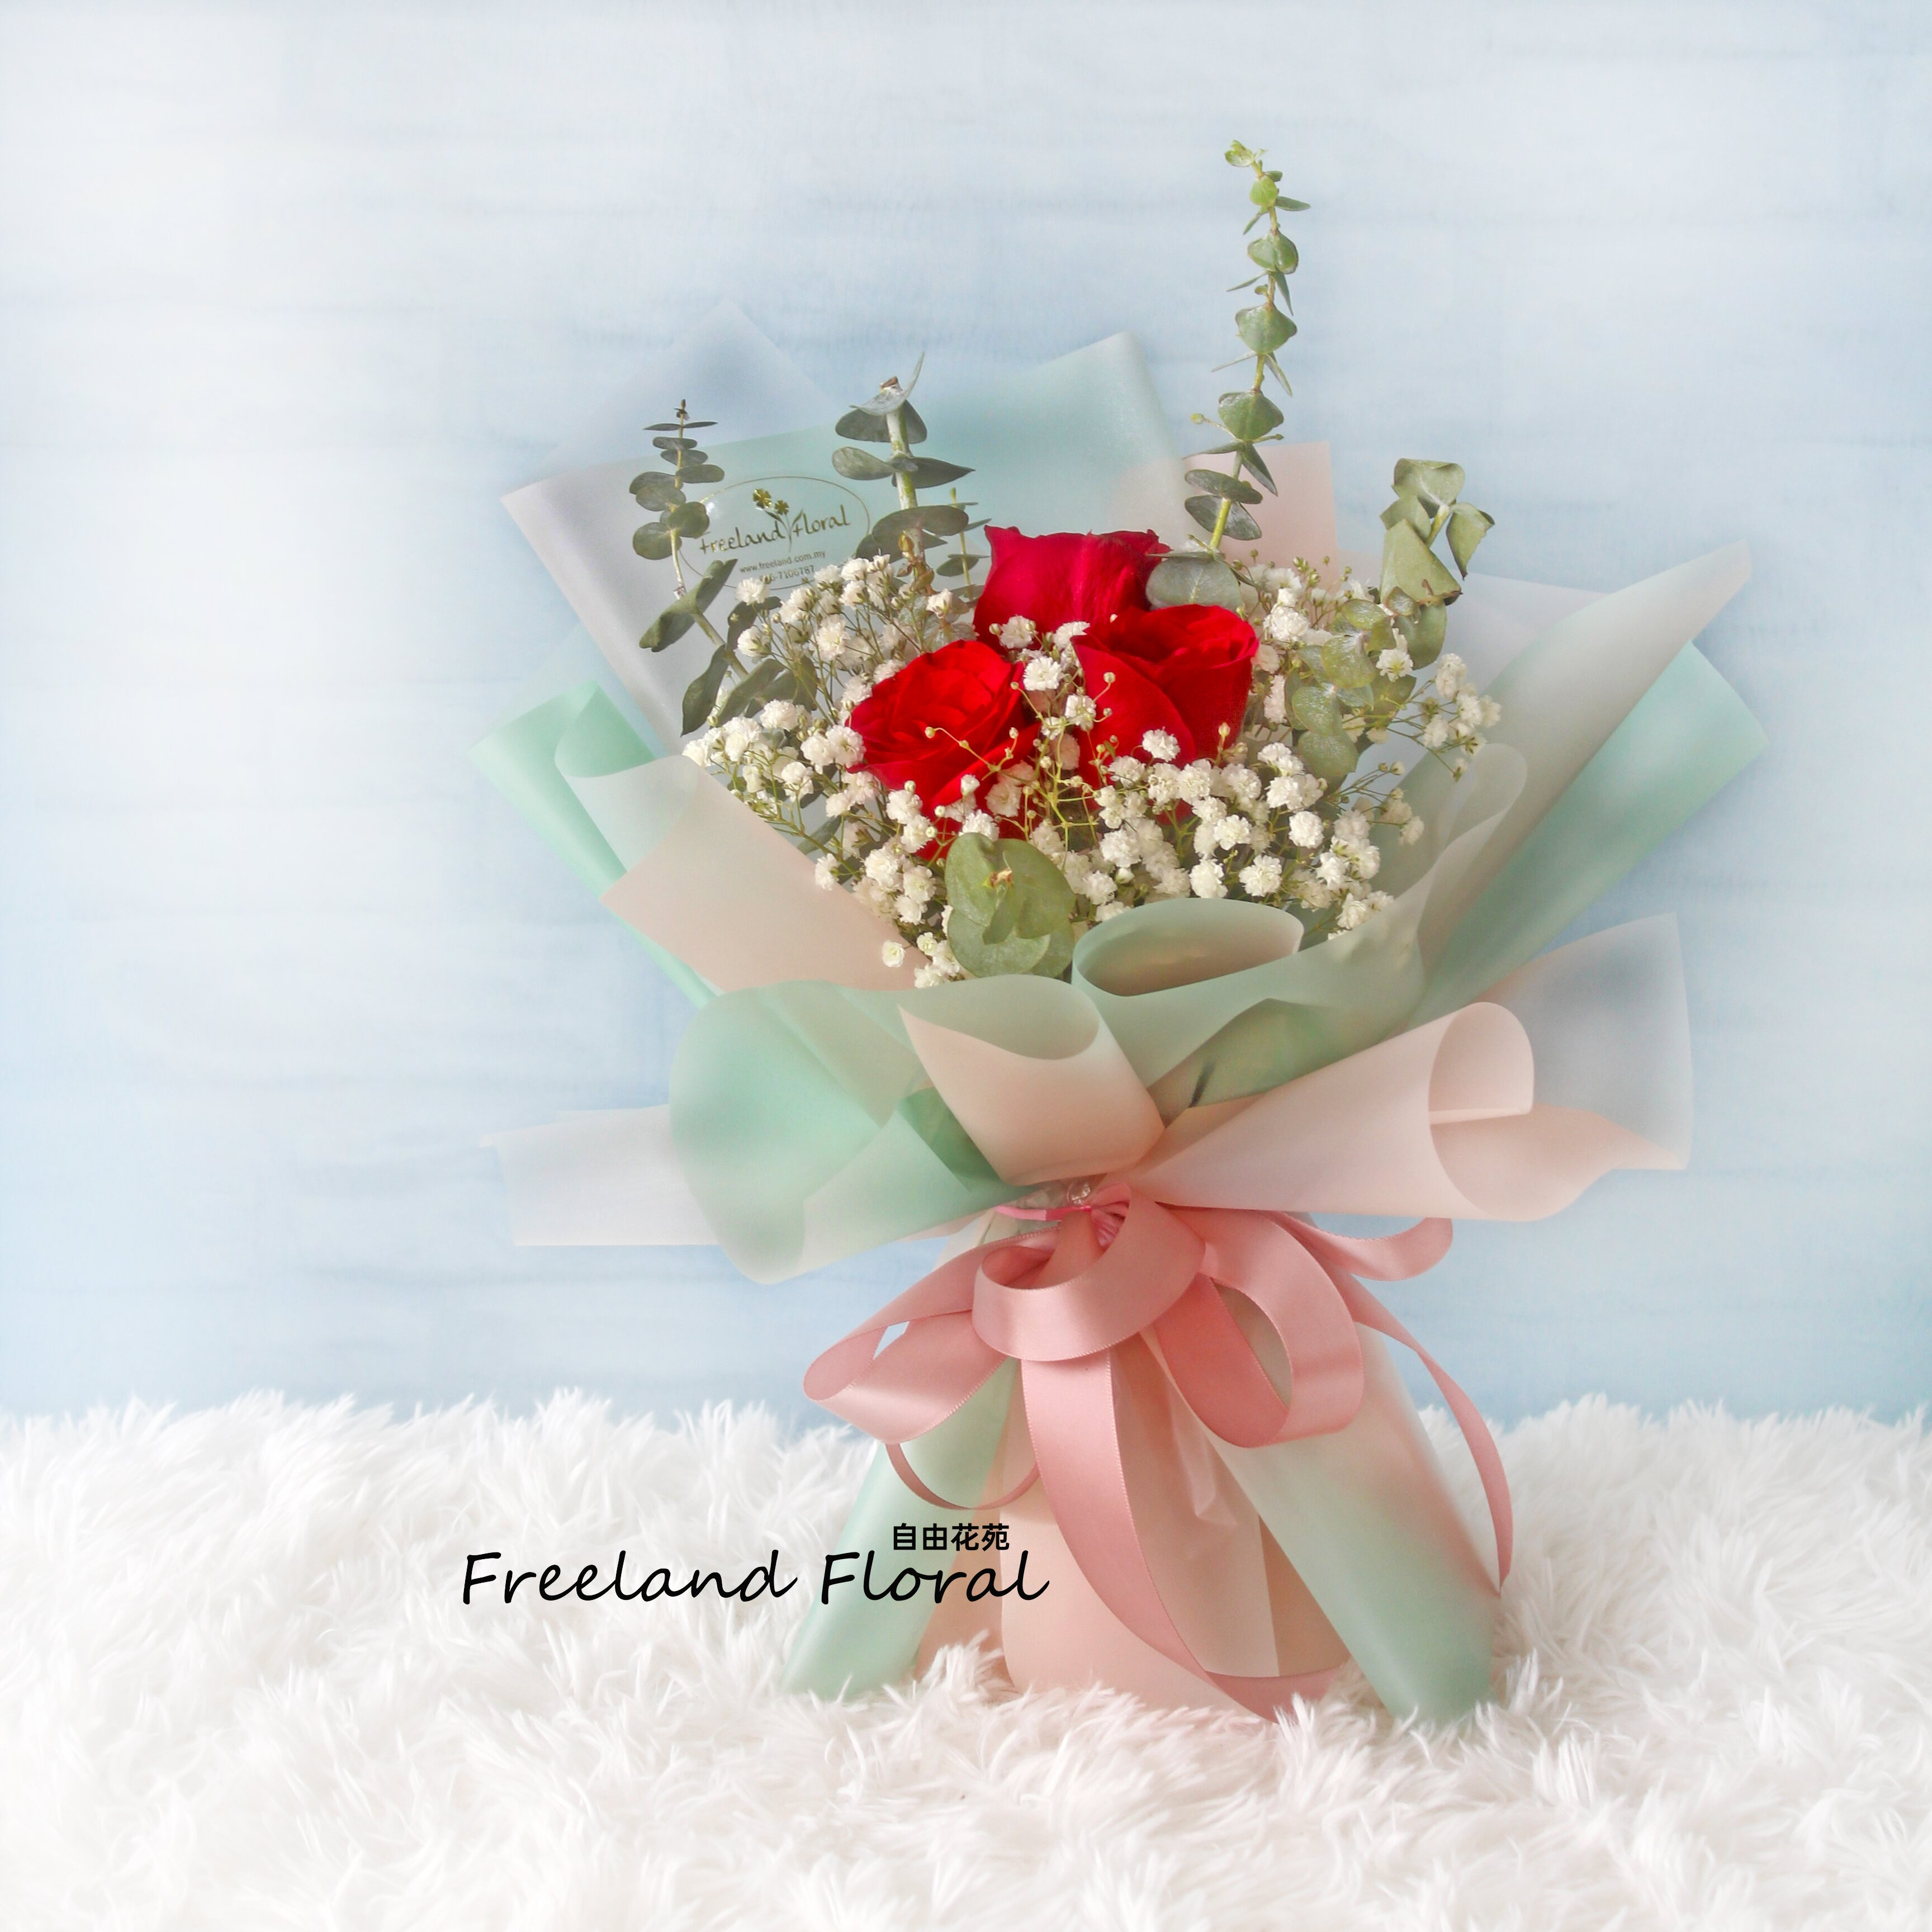 Once Upon A Time - Freeland Floral 自由花苑